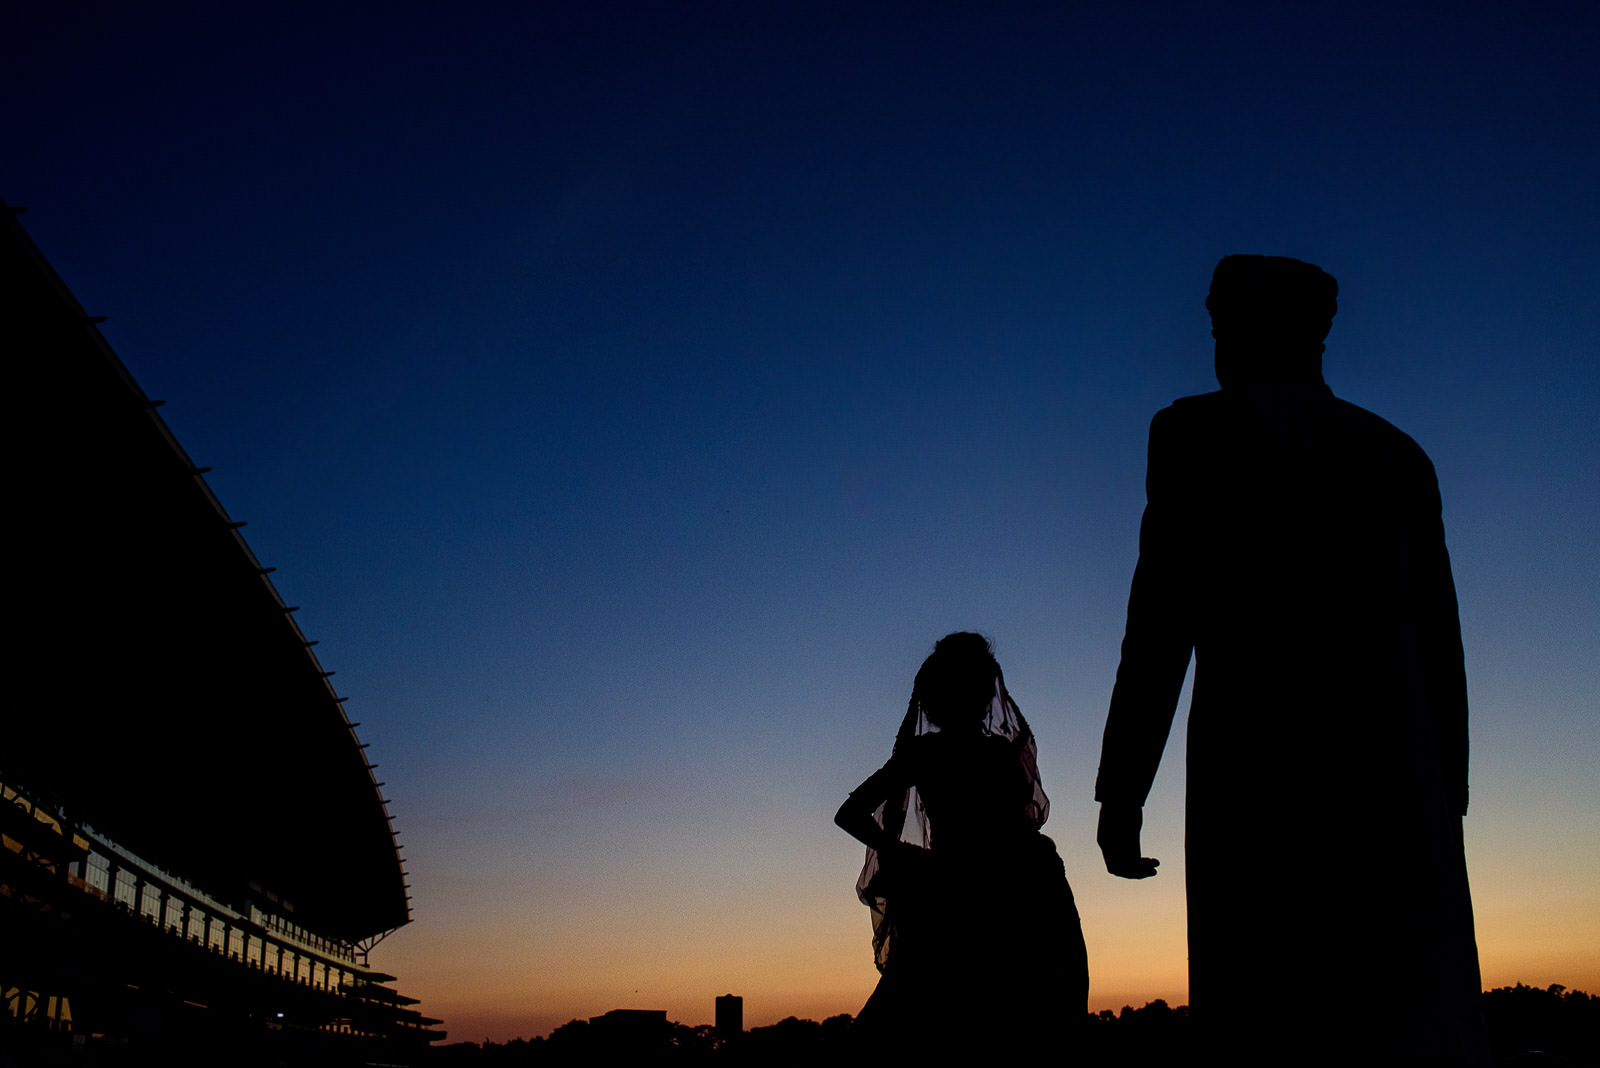 Sunset silhouettes on indian wedding in London